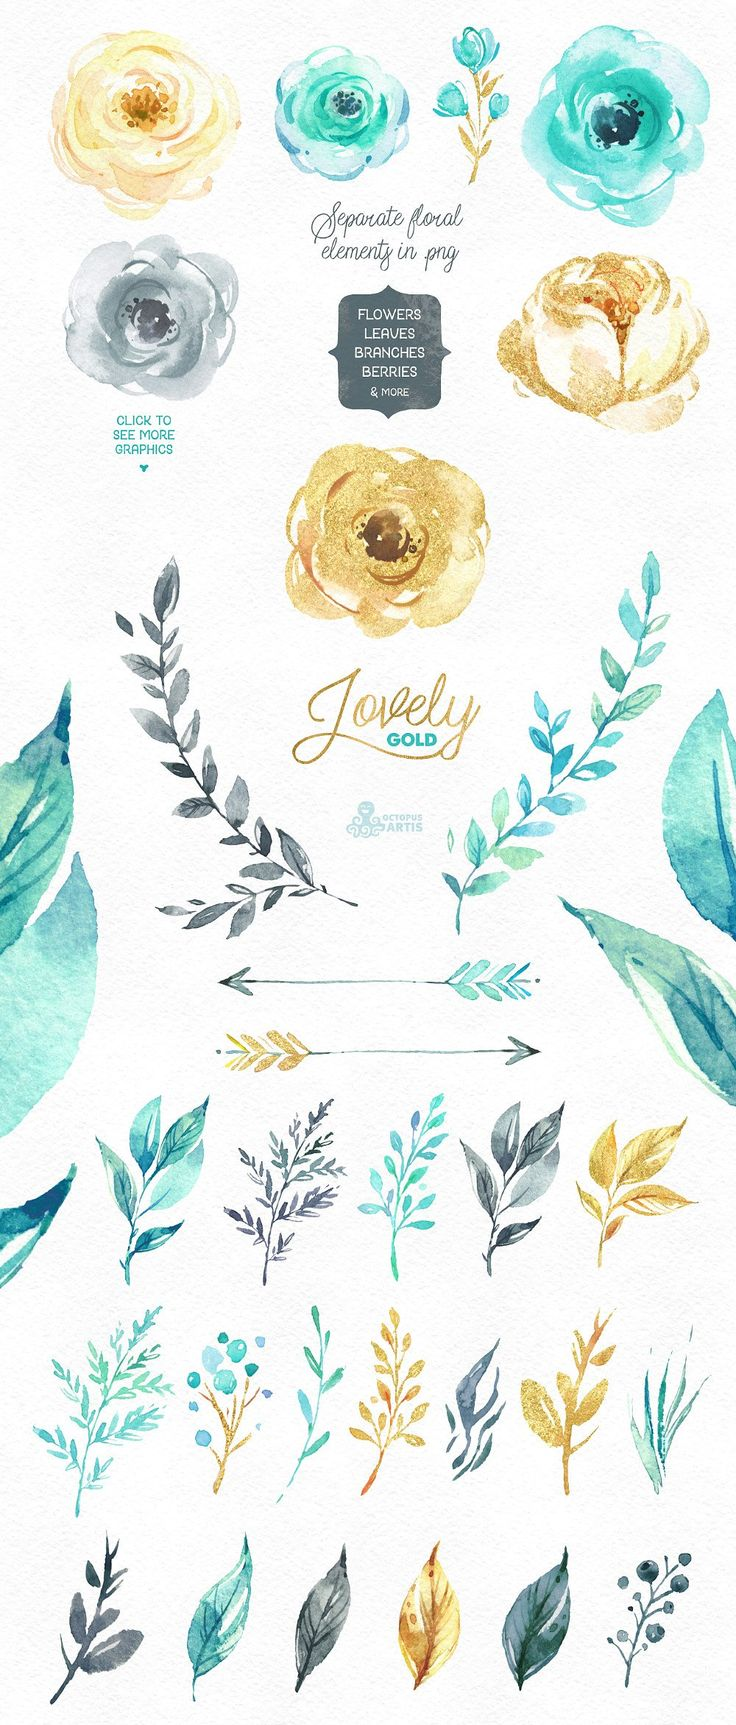 50%OFF! Lovely Flowers. Mint & Gold by OctopusArtis on @creativemarket